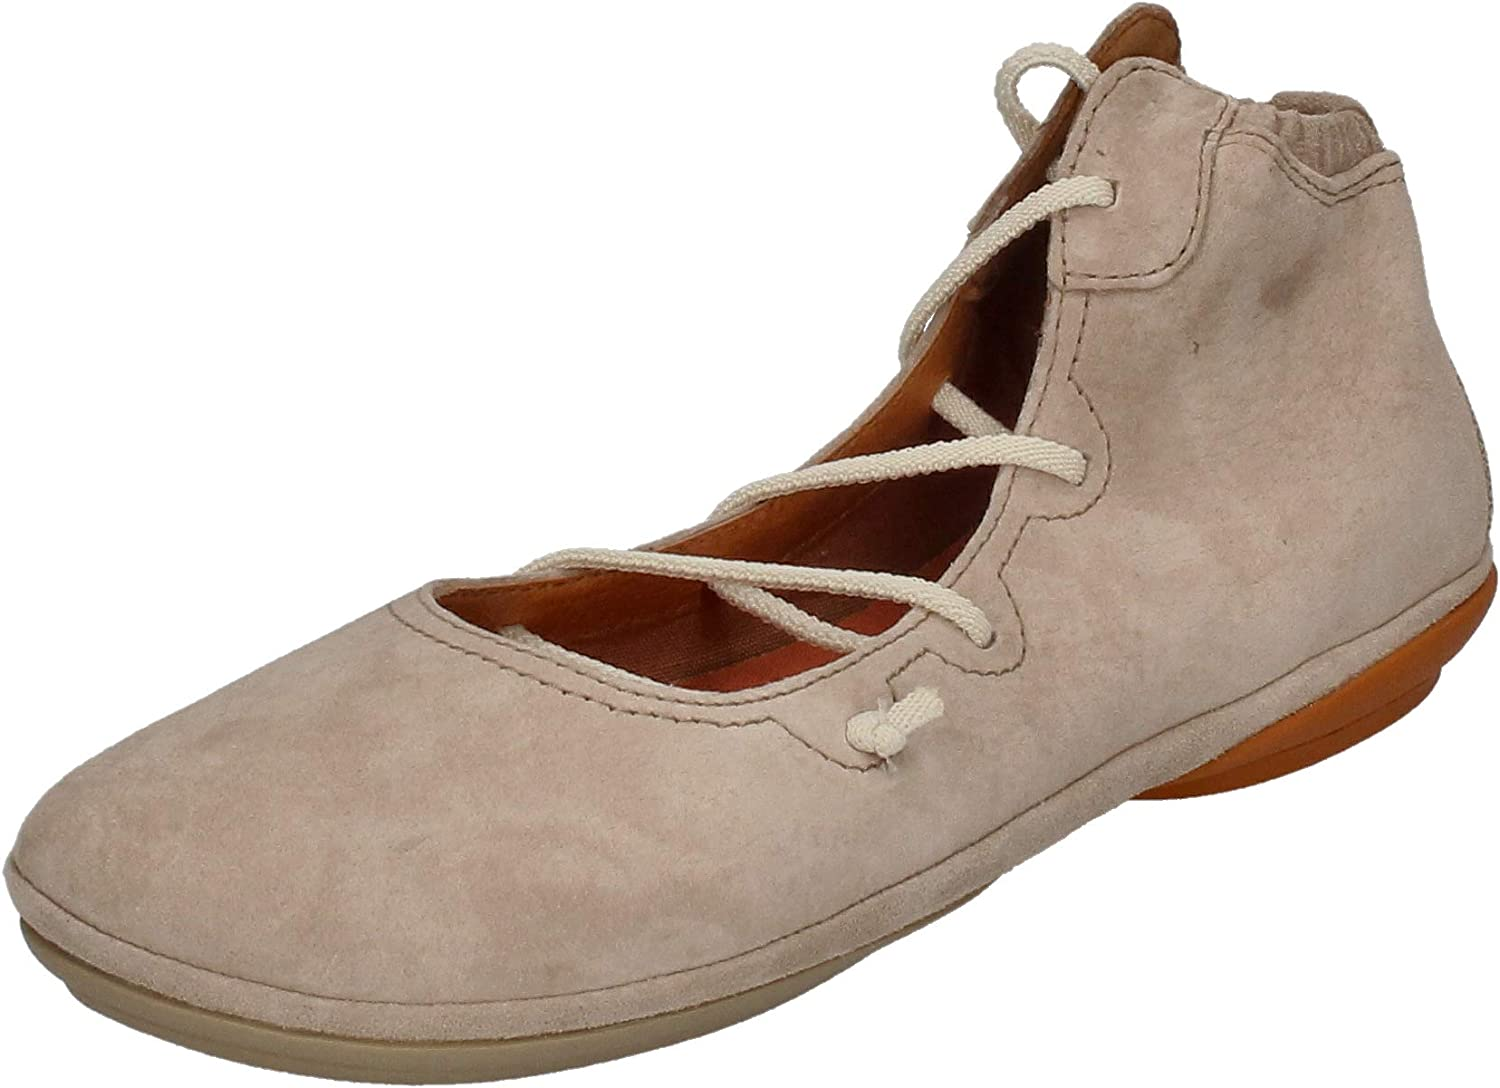 Popular brand in the world Virginia Beach Mall Camper Women's Boots Ankle